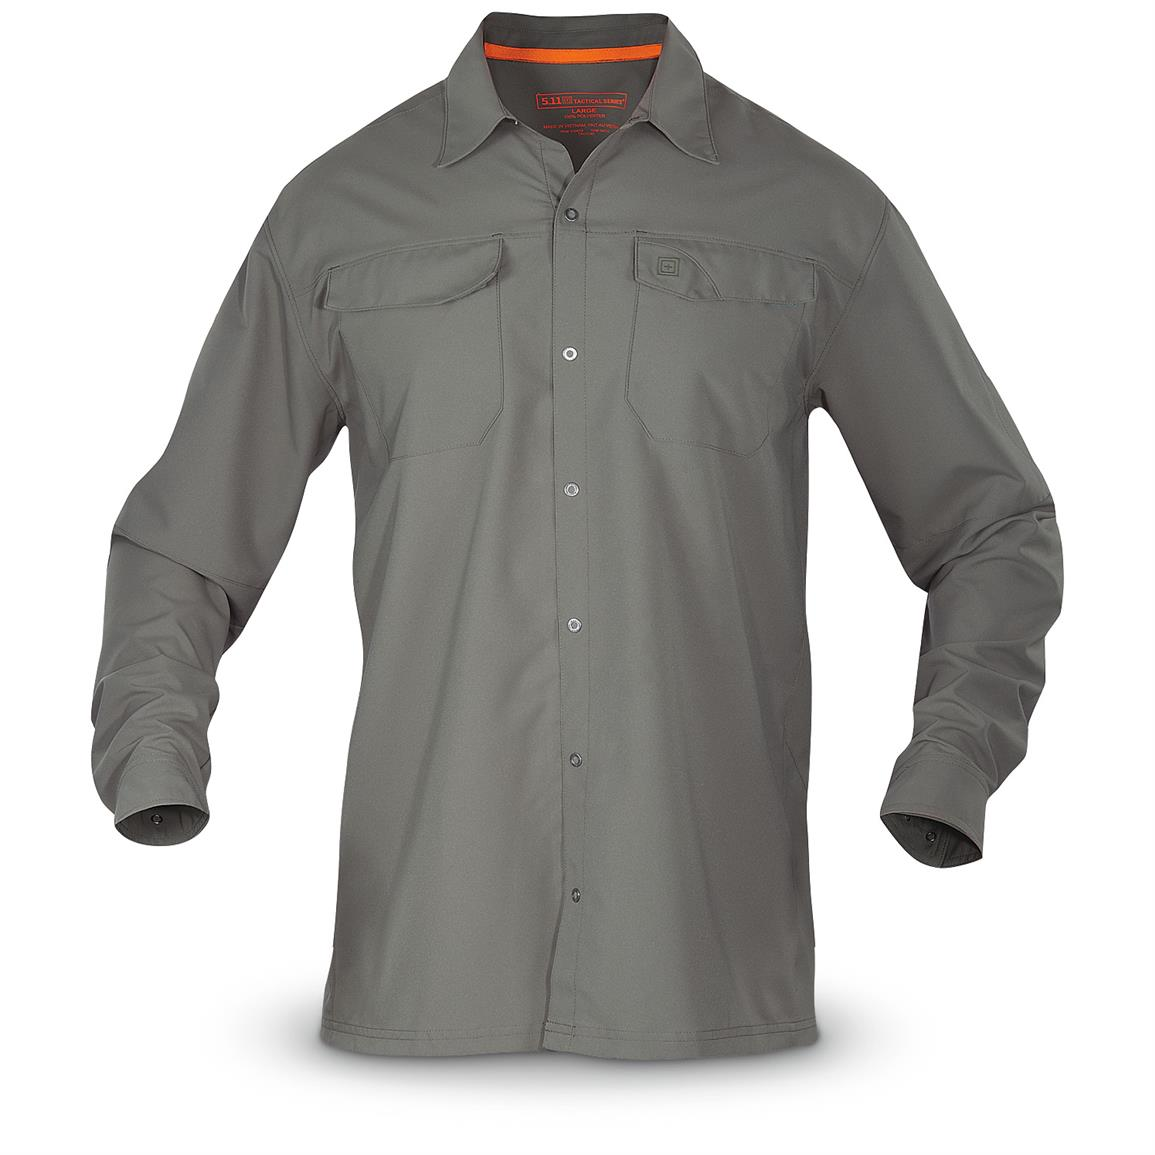 5.11 Tactical Men's Freedom Flex Long Sleeve Shirt, Storm